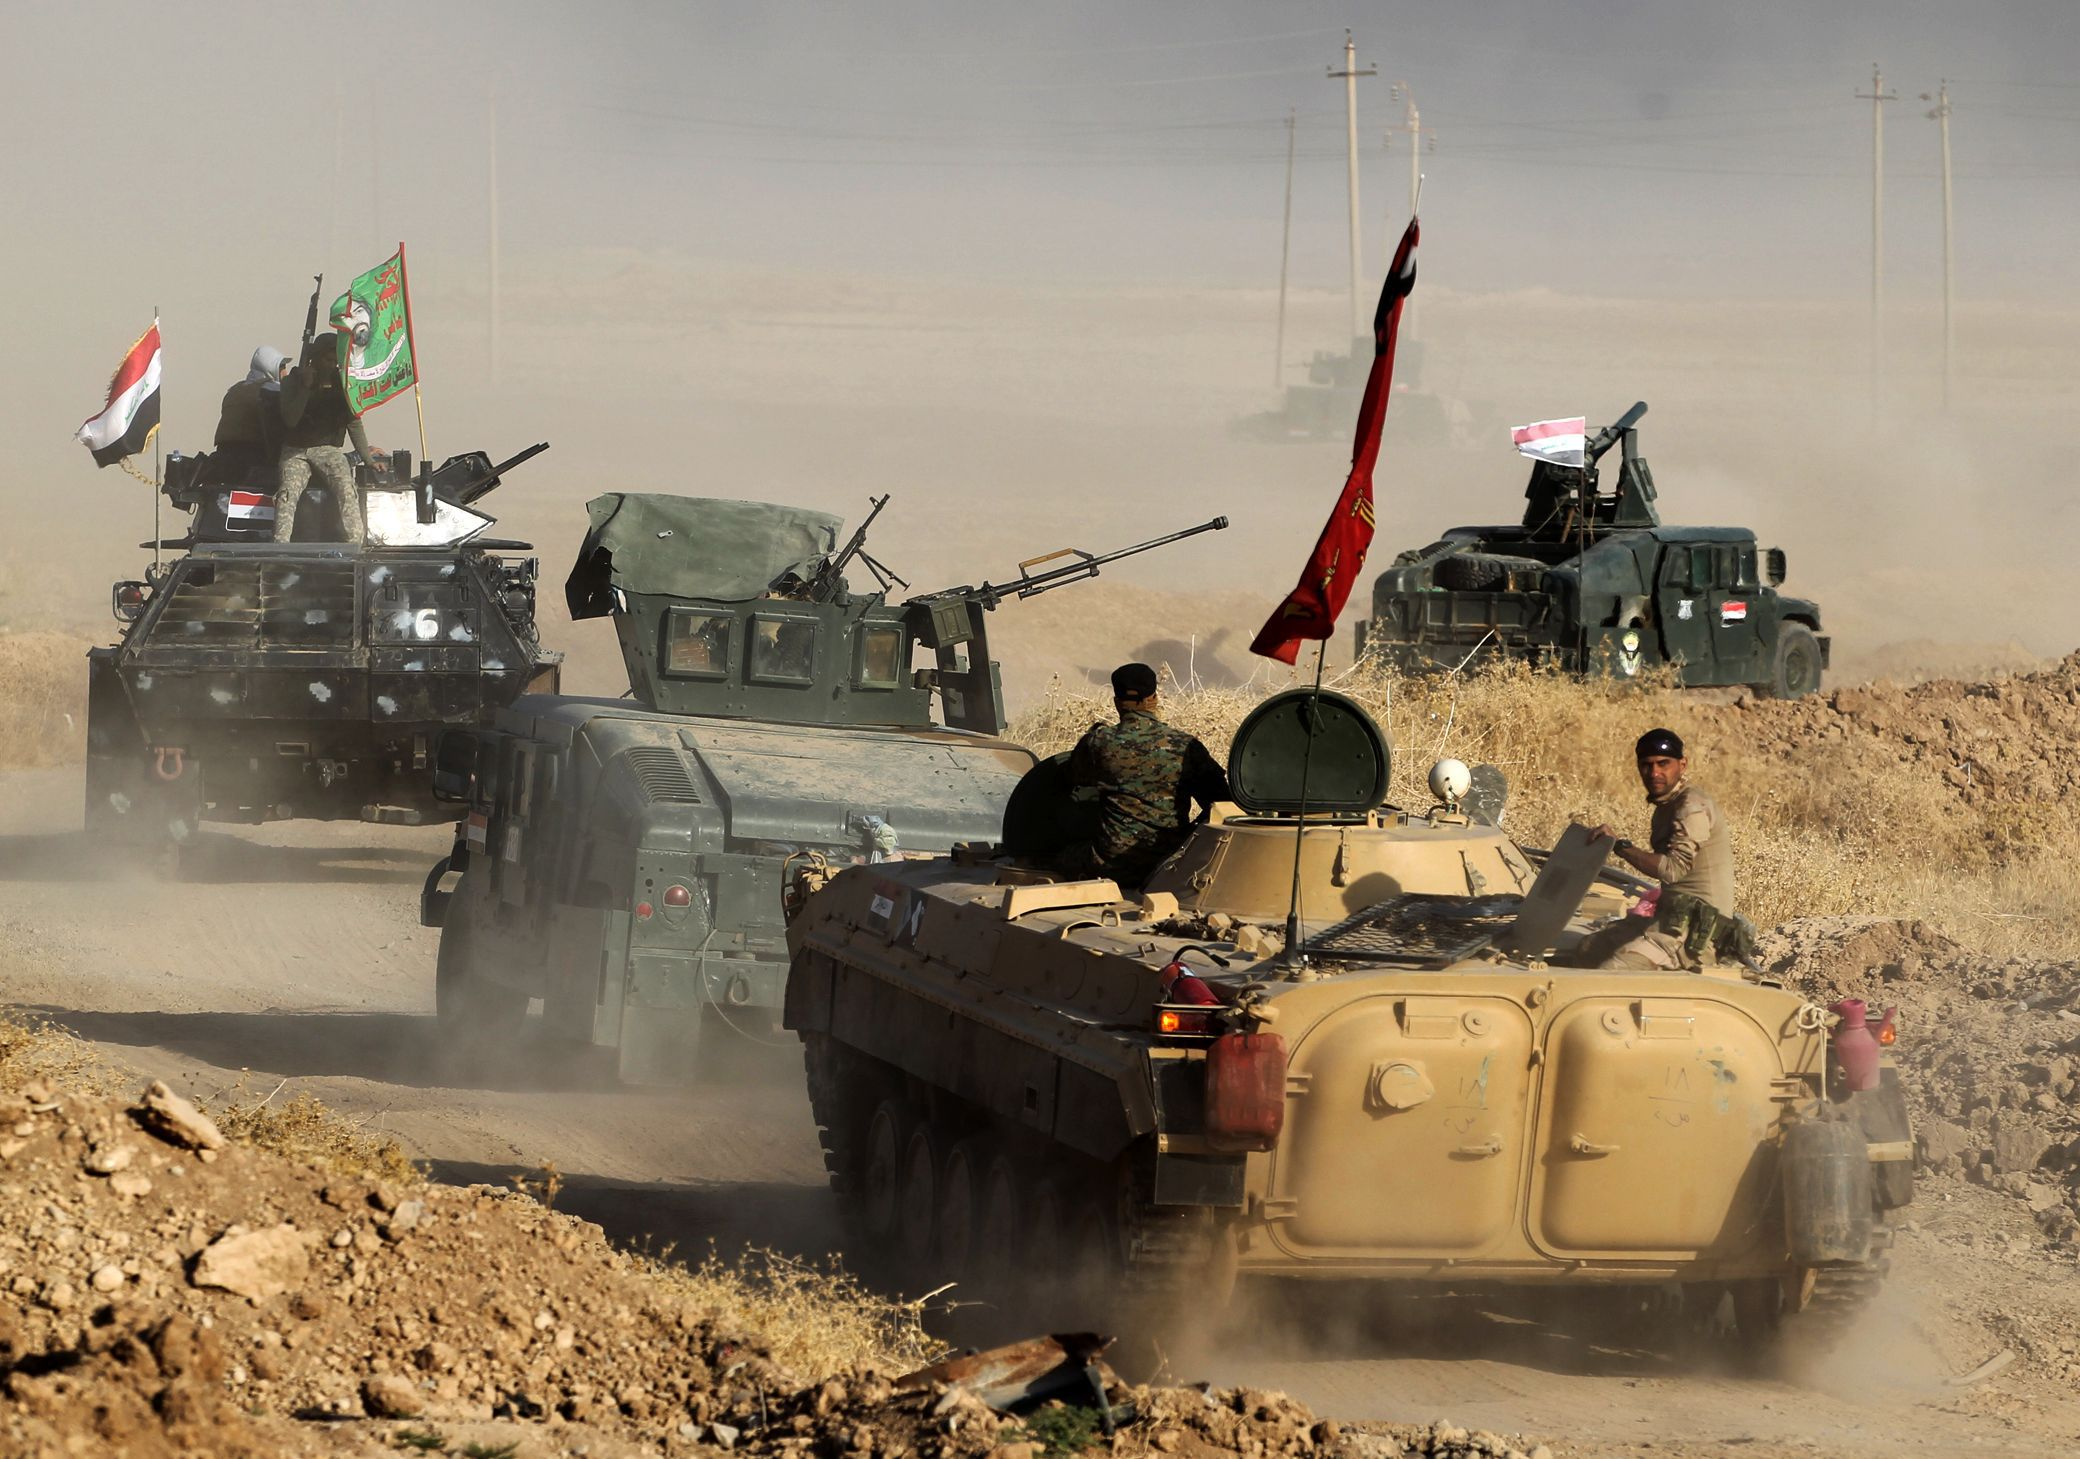 Iraqi forces deploy in the area of al-Shourah, some 45 kms south of Mosul, as they advance towards the city to retake it from the Islamic State (IS) group jihadists, on October 17, 2016. Iraqi Prime Minister Haider al-Abadi announced earlier in the day that the long-awaited operation to recapture Mosul was under way. / AFP PHOTO / AHMAD AL-RUBAYE / TT / kod 444